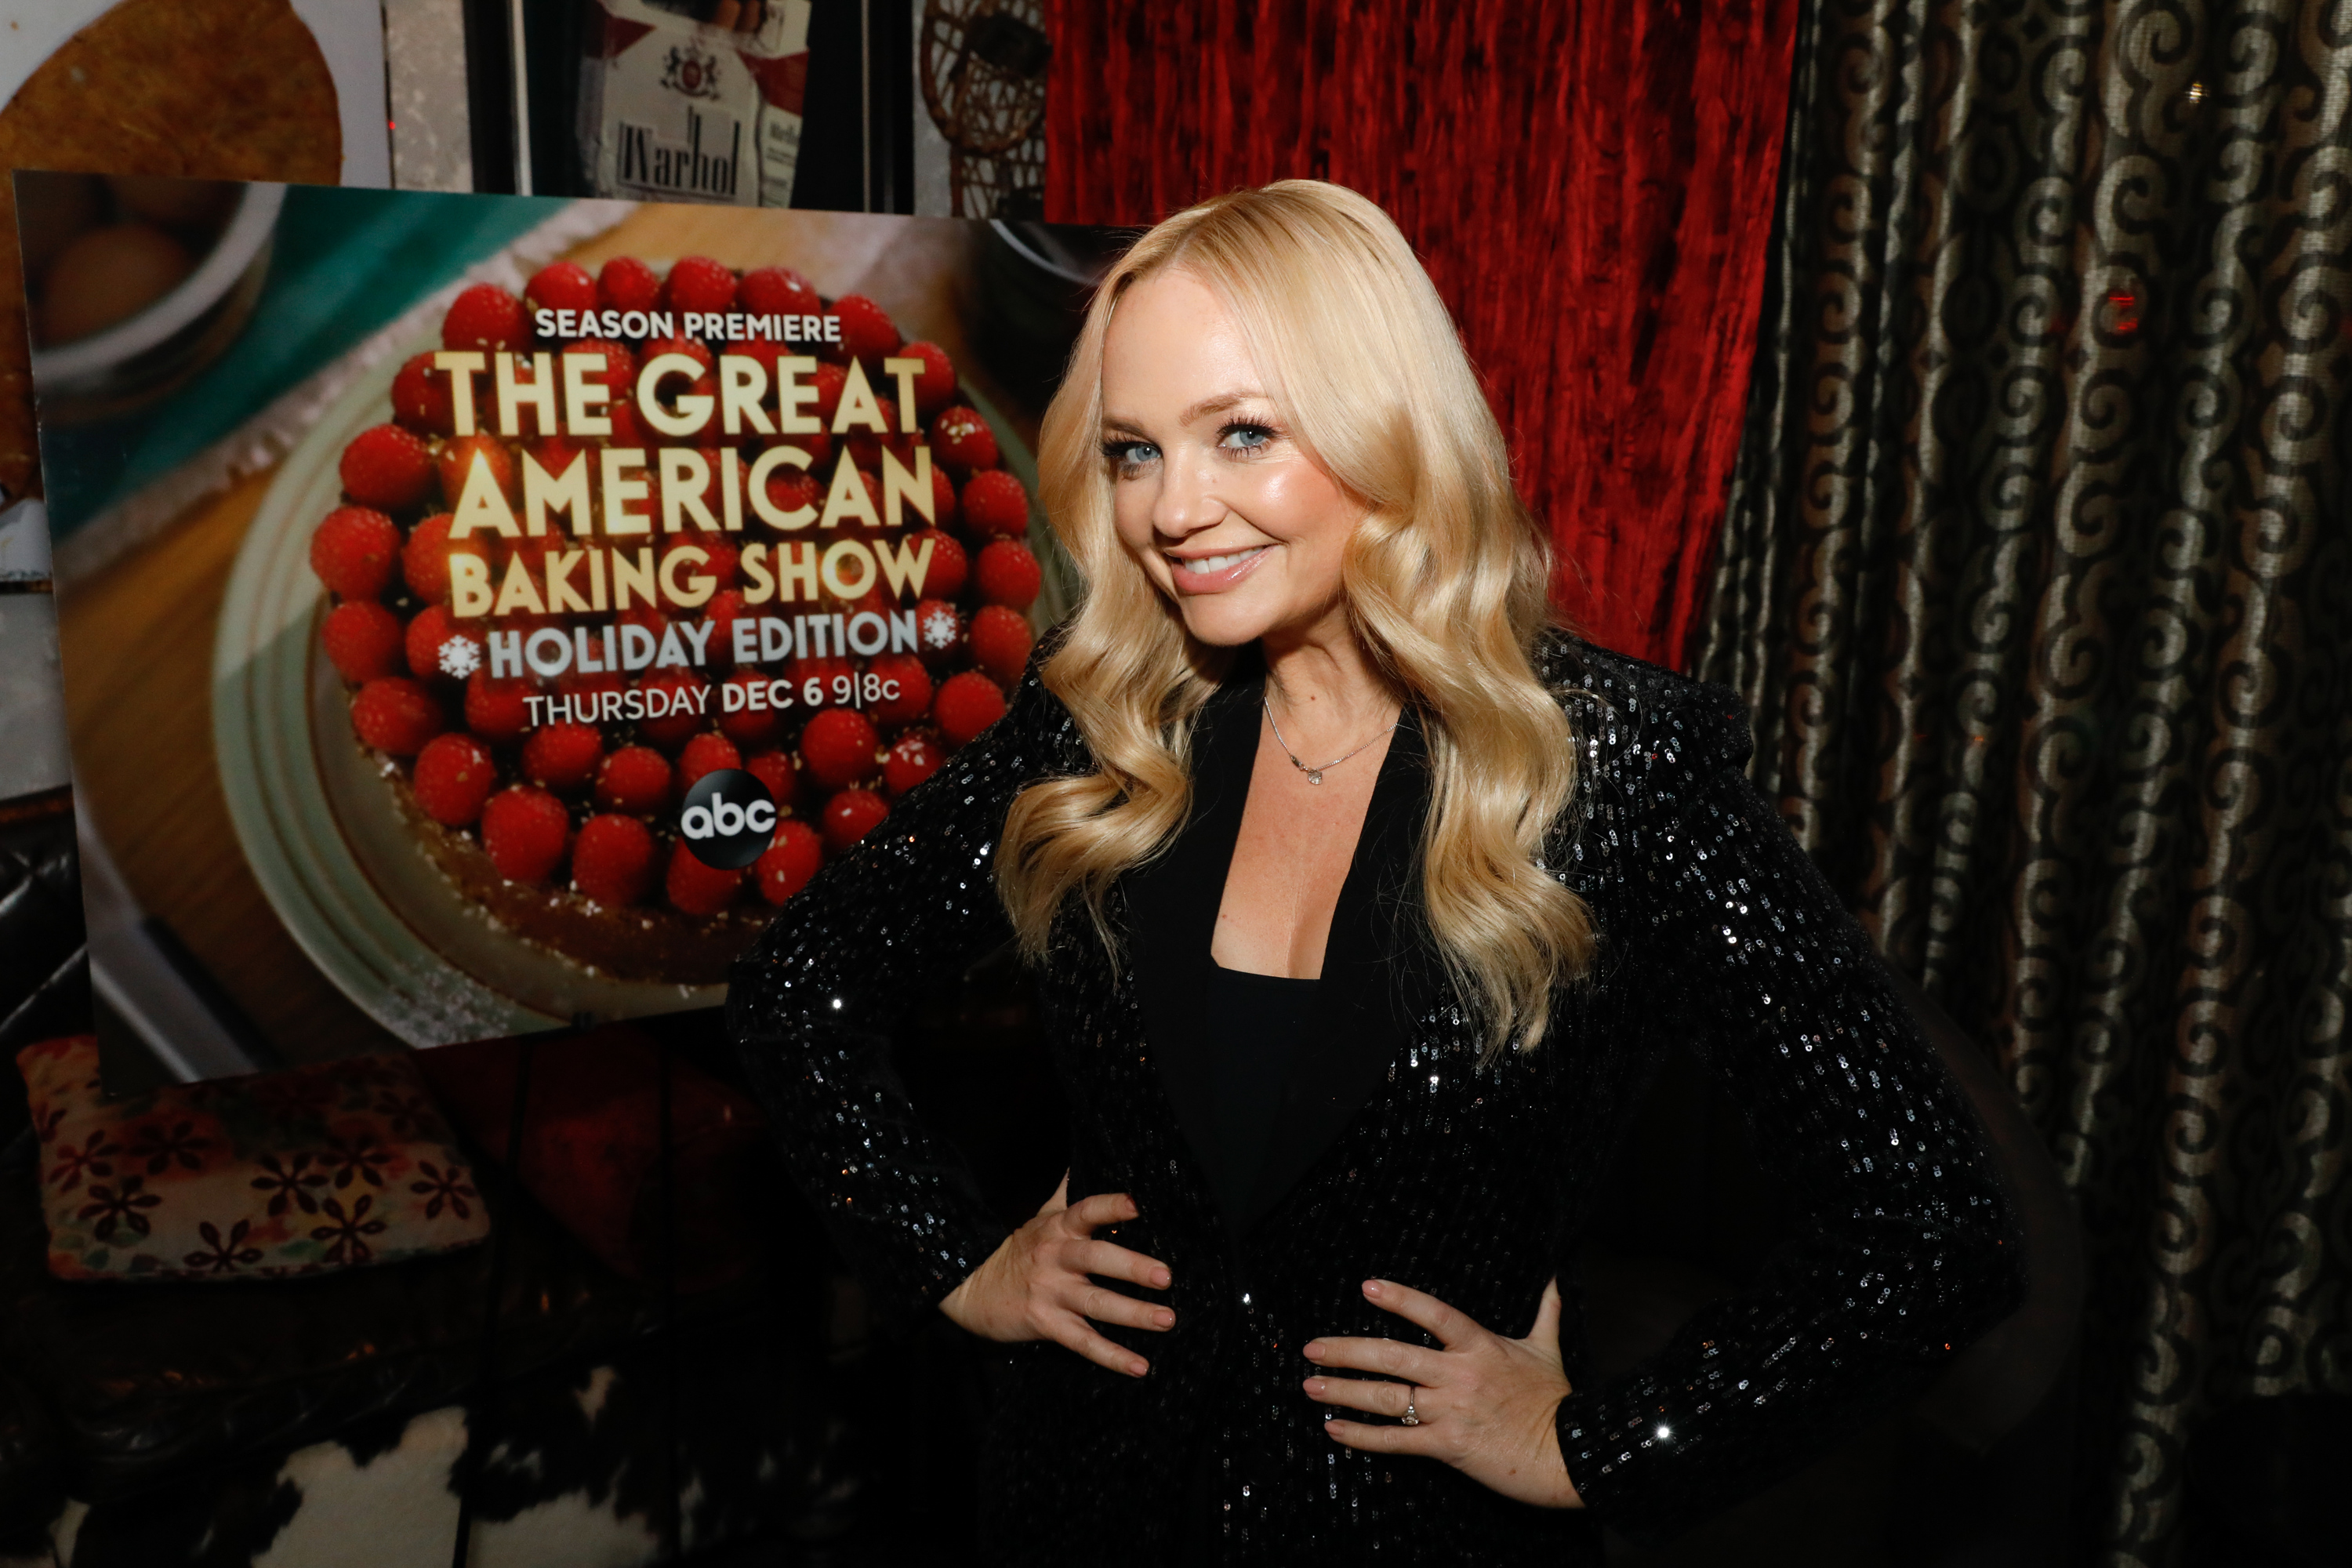 <div class='meta'><div class='origin-logo' data-origin='WABC'></div><span class='caption-text' data-credit='ABC/Heidi Gutman'>Sherry Yard and Emma Bunton of &#34;The Great American Baking Show Holiday Edition&#34; at a Special Screening of the Season Four Premiere Episode at the IPIC Theater in NYC, 12/3/18.</span></div>